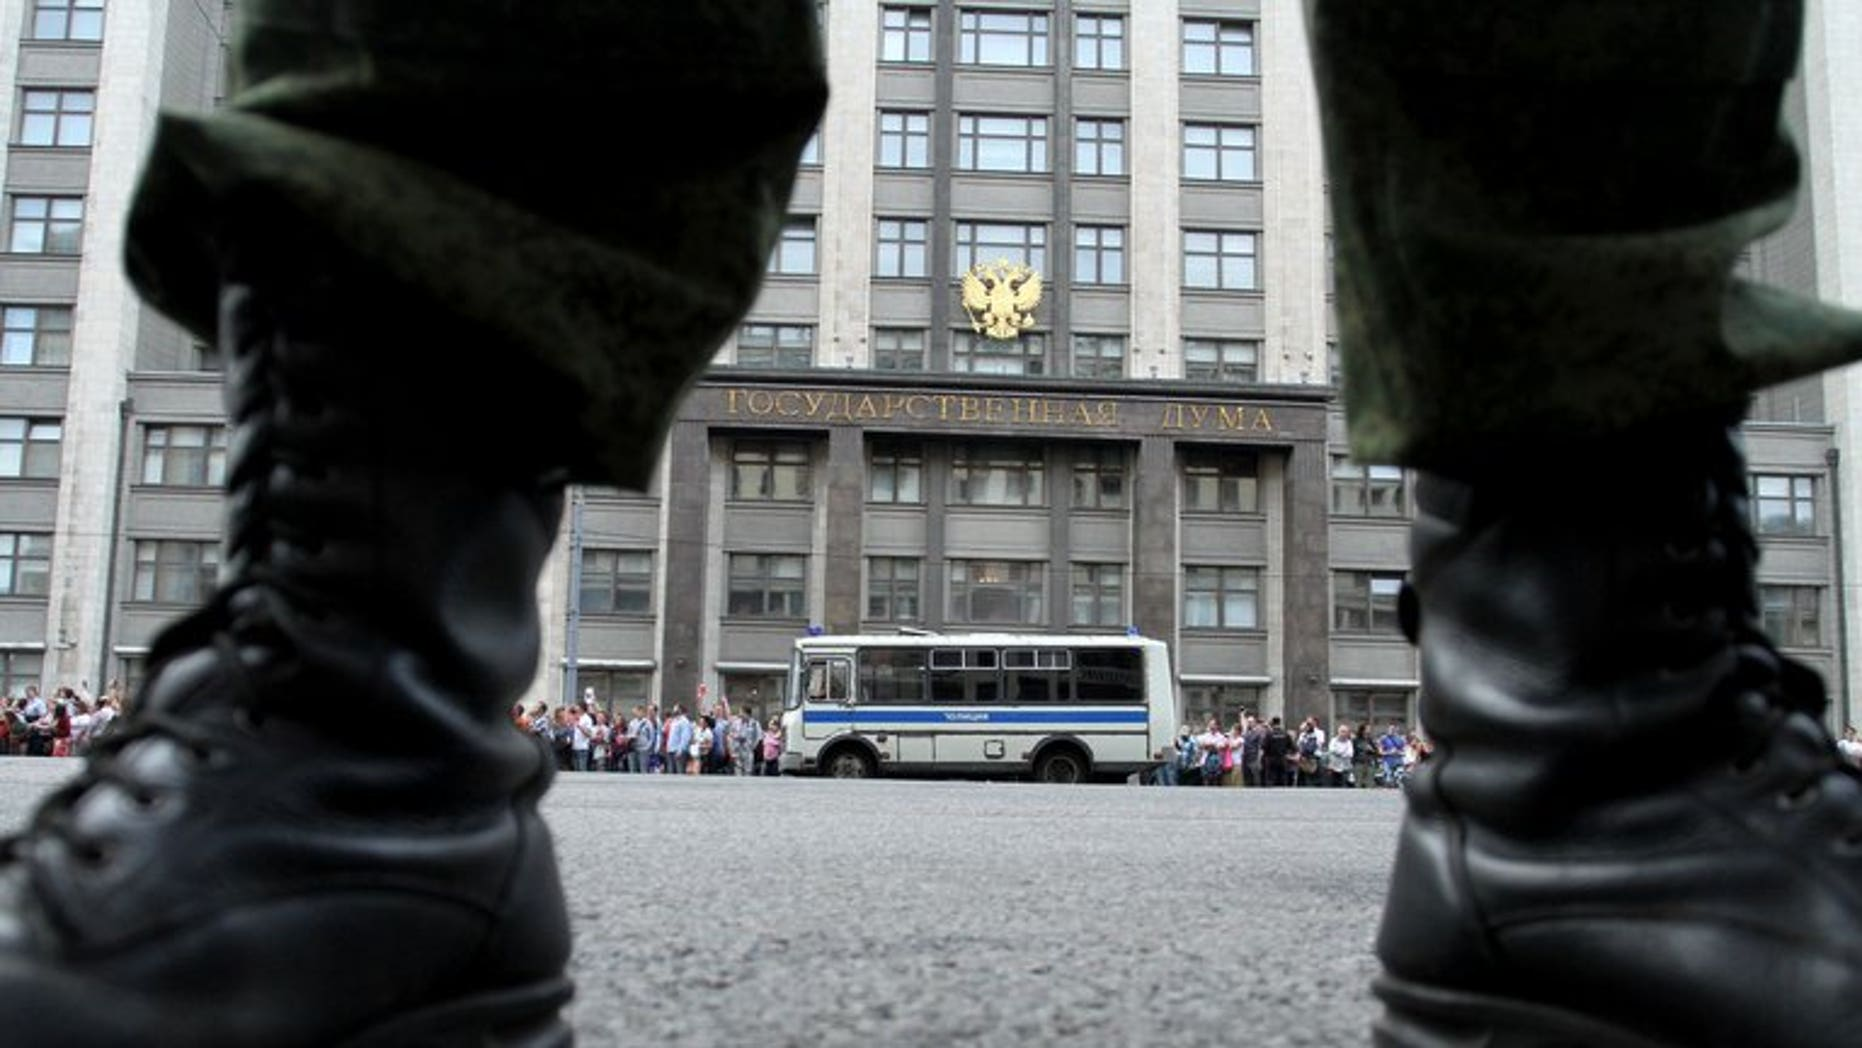 A soldier stands guard in front of the State Duma in Moscow, on July 18, 2013. Russian police have arrested a Siberian surgeon on suspicion of stealing heroin that he had extracted from the stomach of a drug mule.